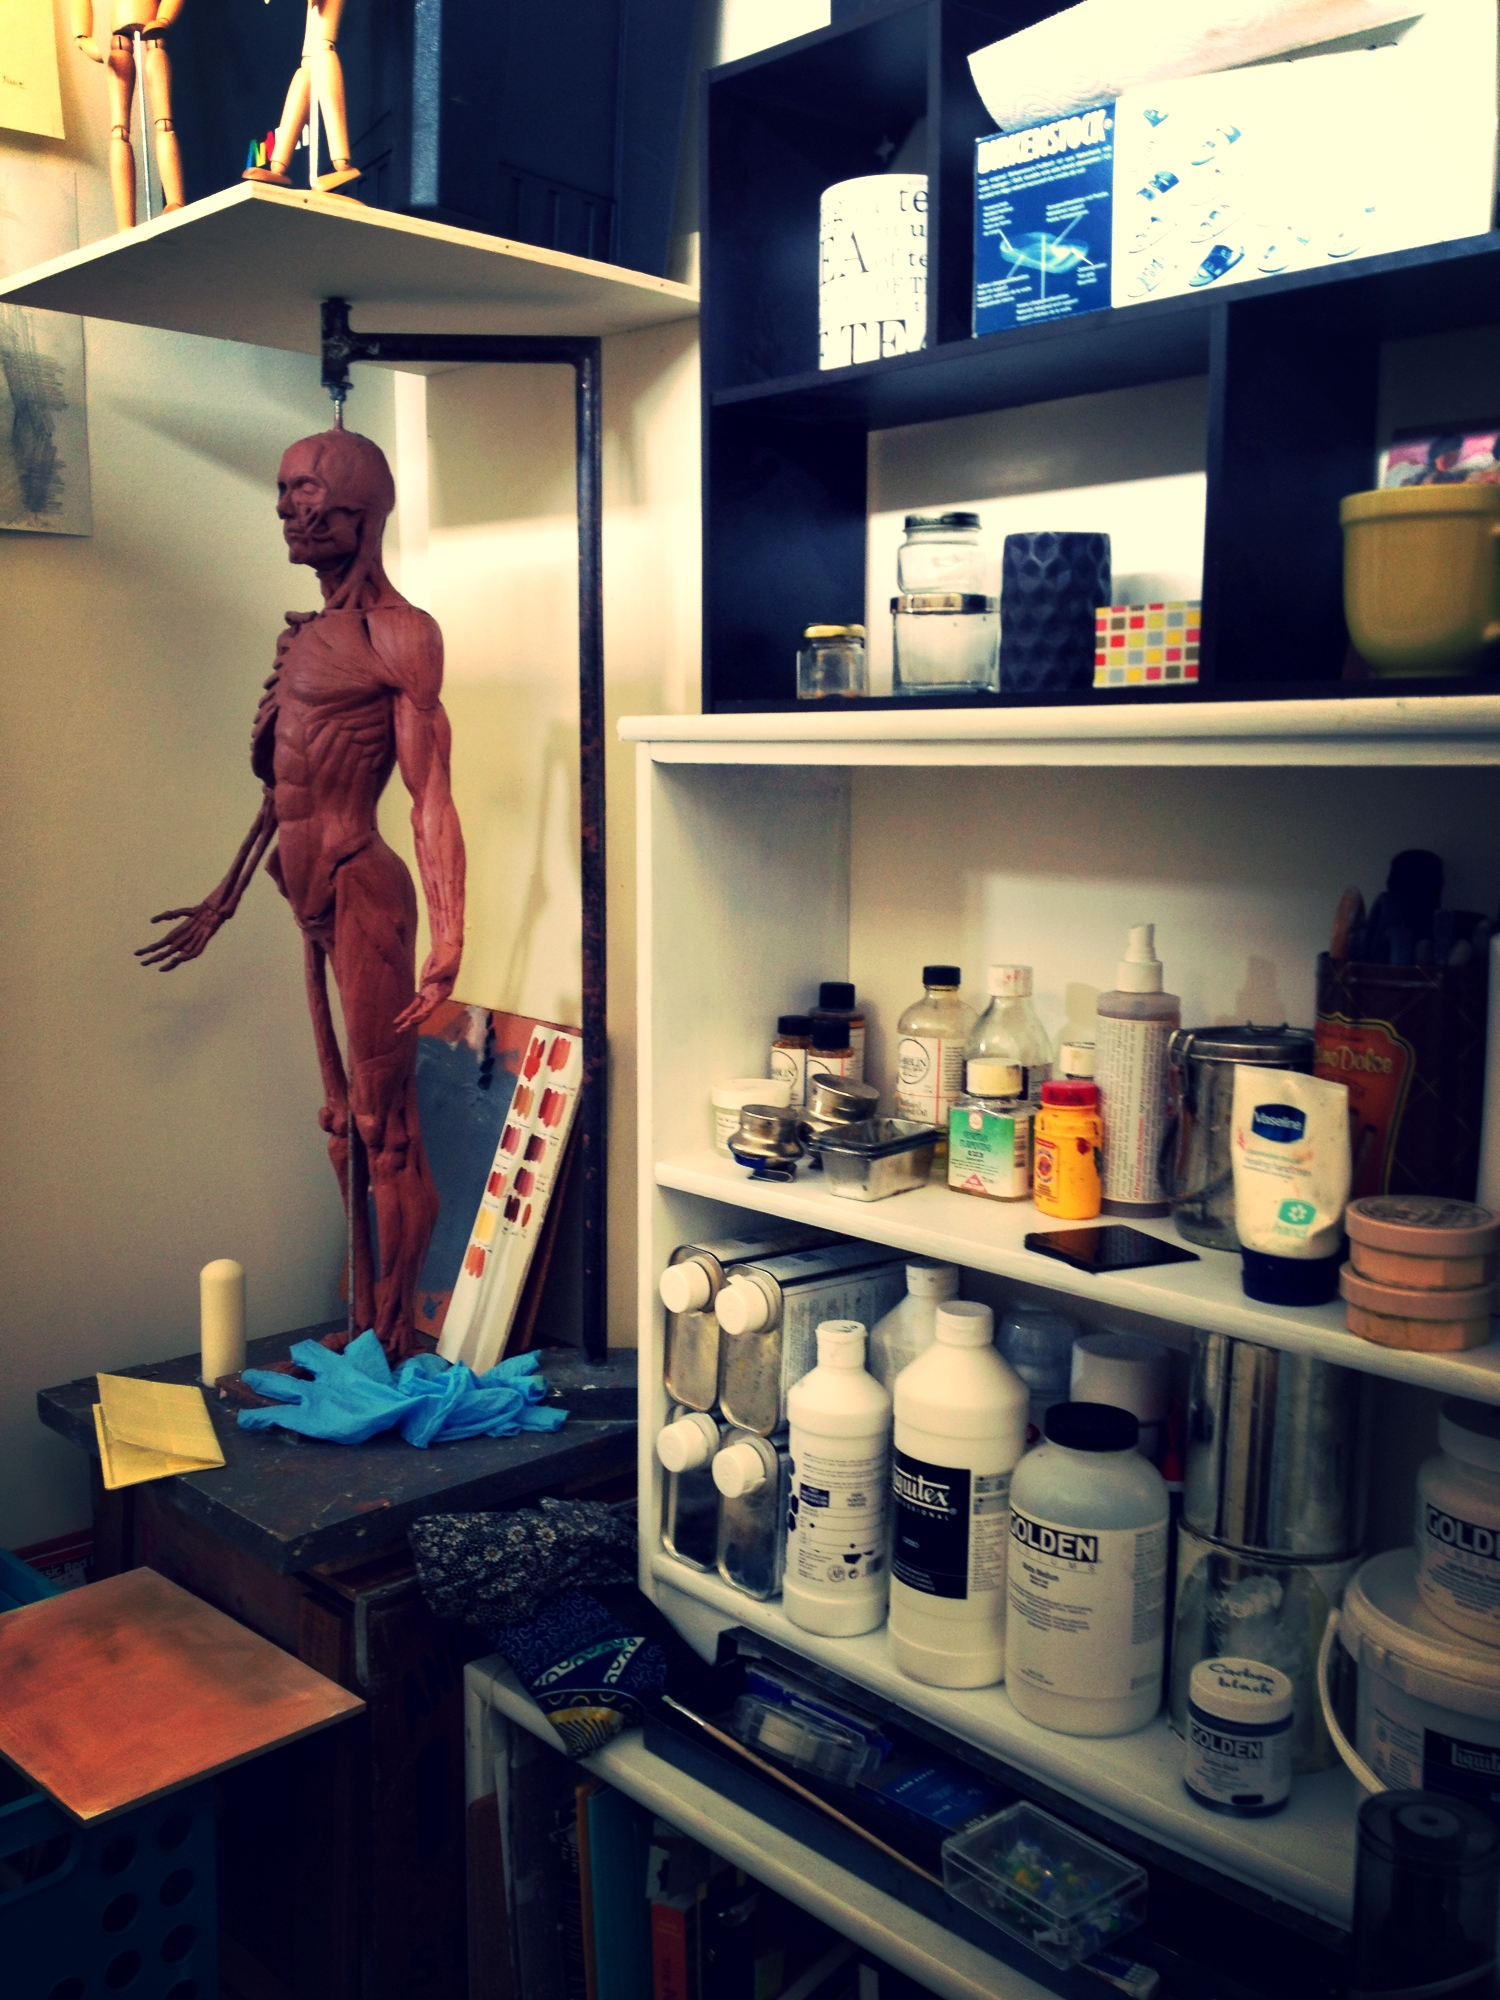 Harvey (my ecorche sculpture) is moved into his new home! My studio is full of stuff.